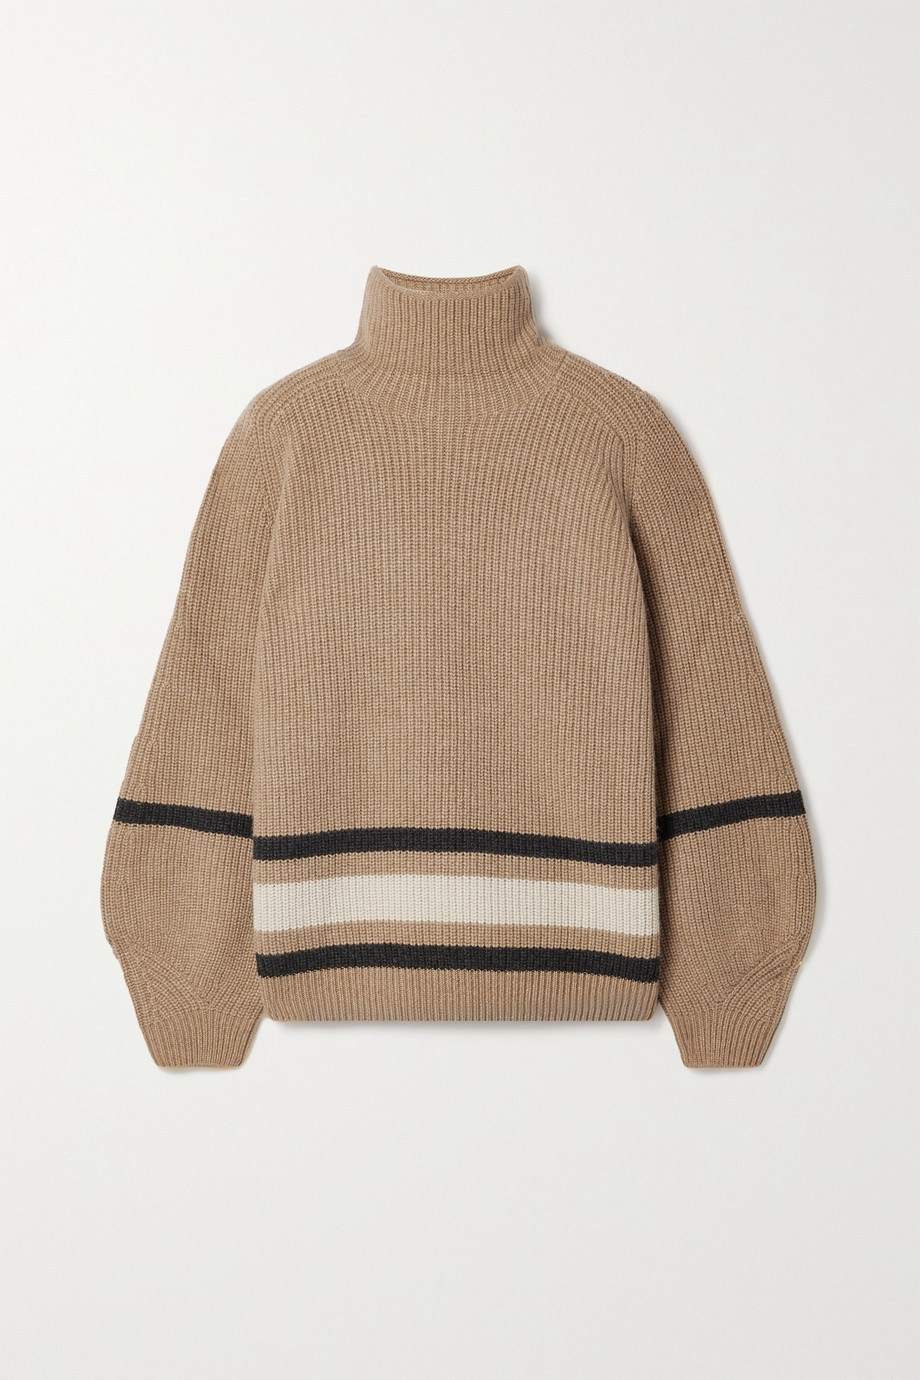 Loro Piana Oversized striped cashmere turtleneck sweater